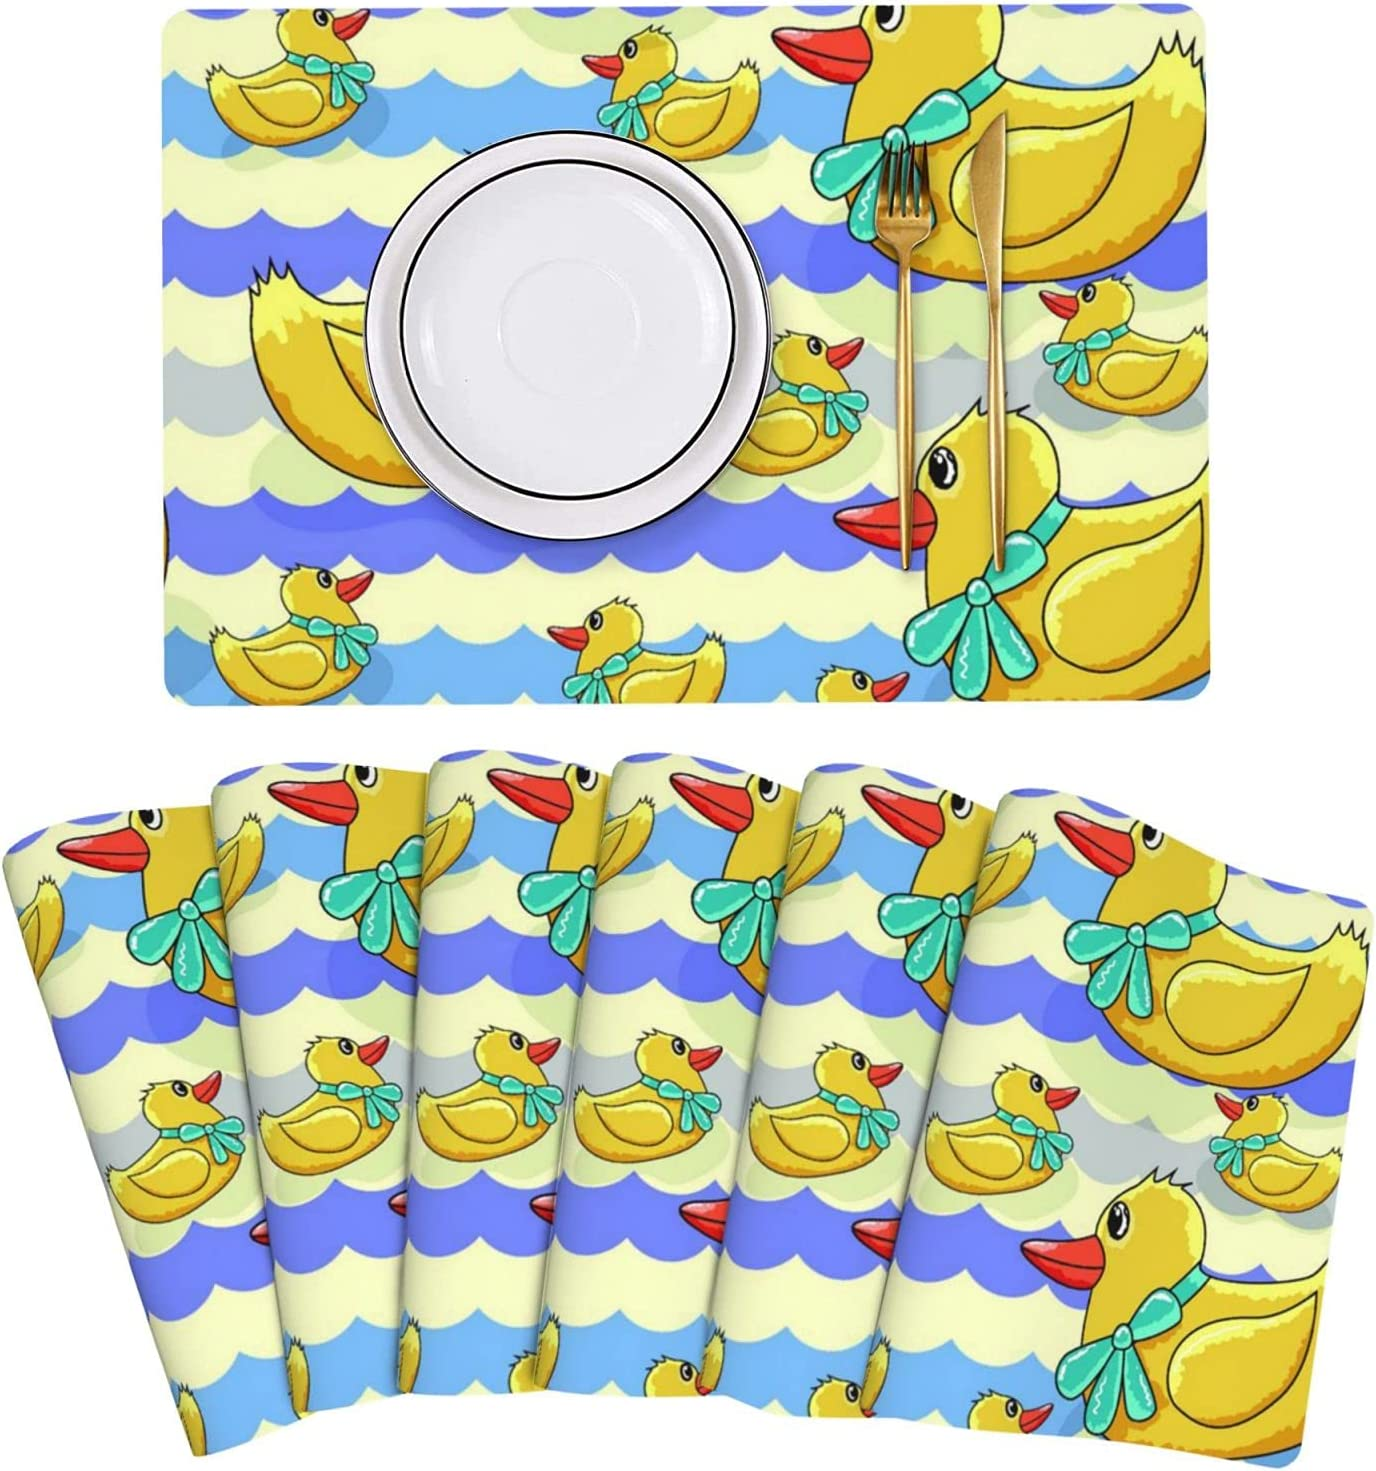 Kansas City Mall Yellow Rubber Ducks Pattern Placemat Leather Special sale item Table 6 of Mats Set